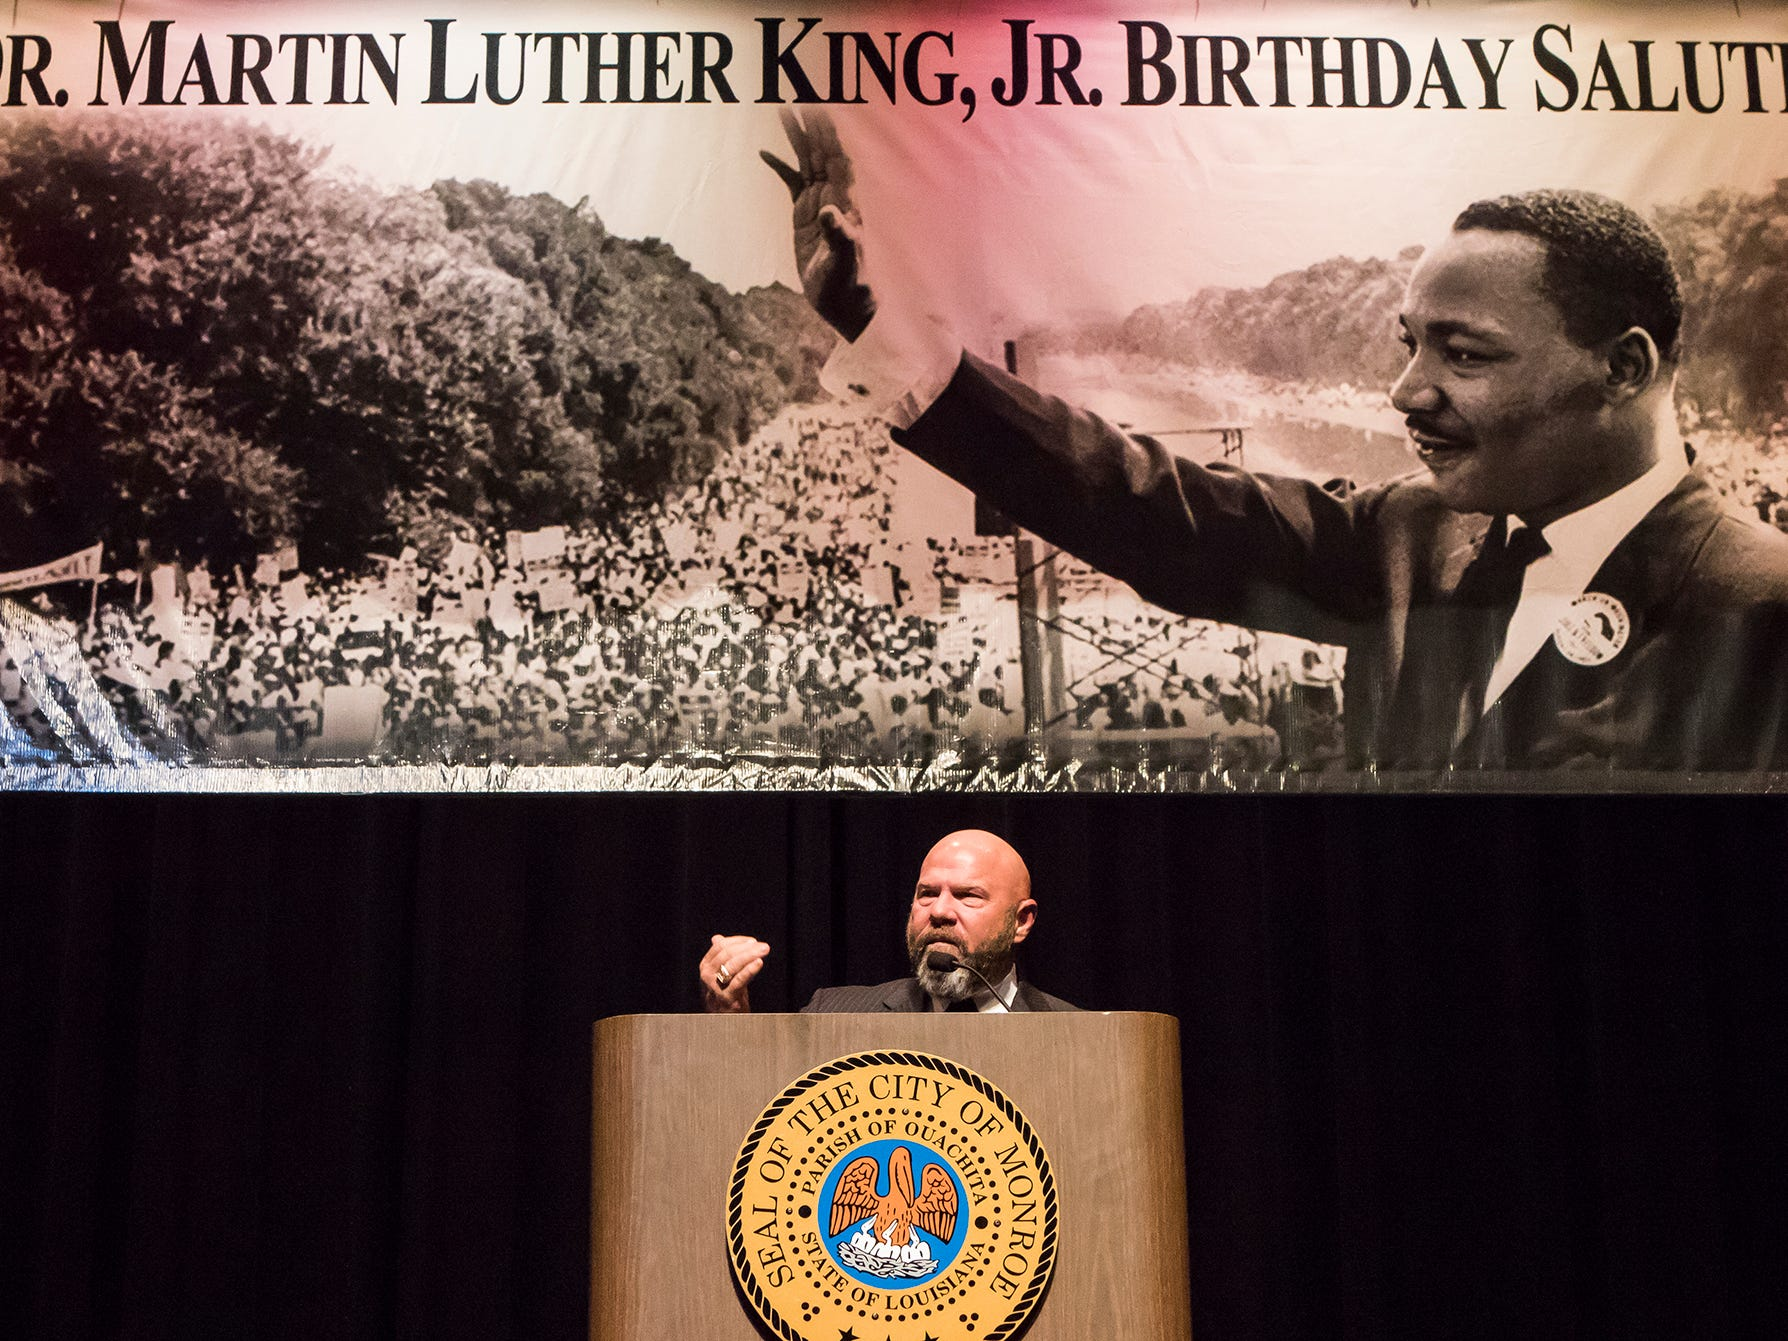 Bishop C. T. Hanchey speaks at the 40th Annual City of Monroe Salute to Martin Luther King Jr.